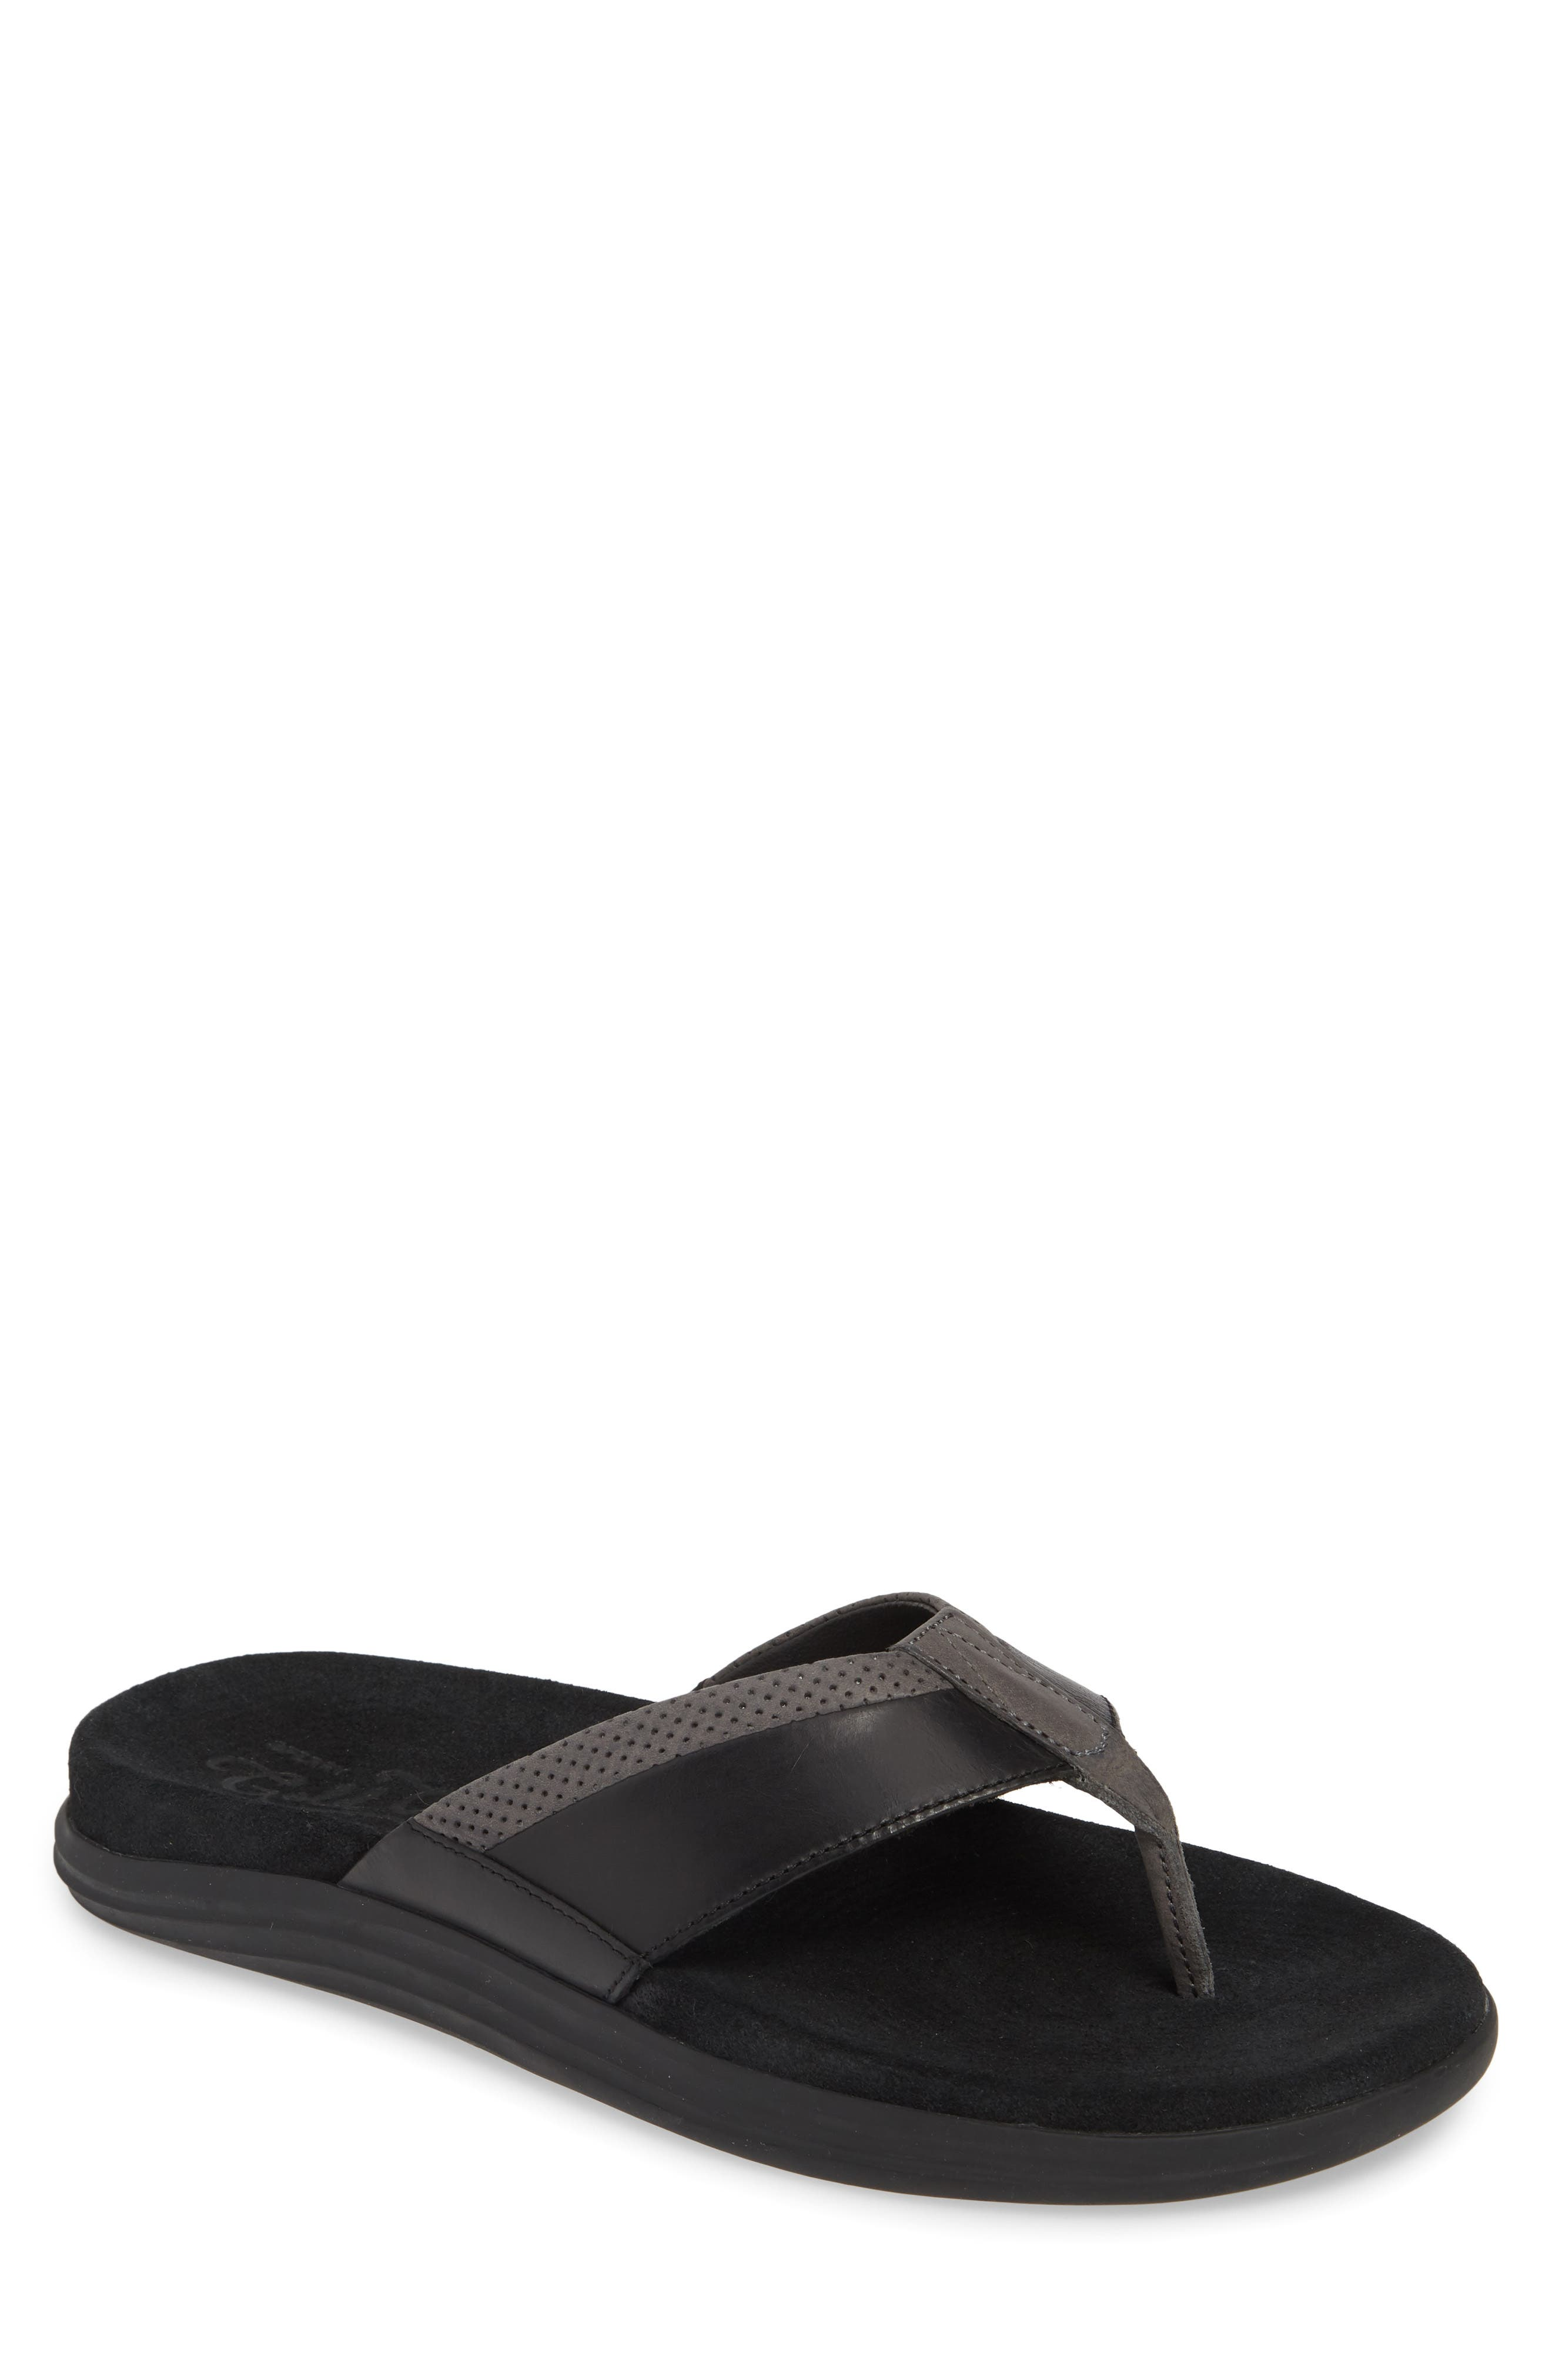 SPERRY, Gold Cup Amalfi Flip Flop, Main thumbnail 1, color, BLACK/ GREY LEATHER